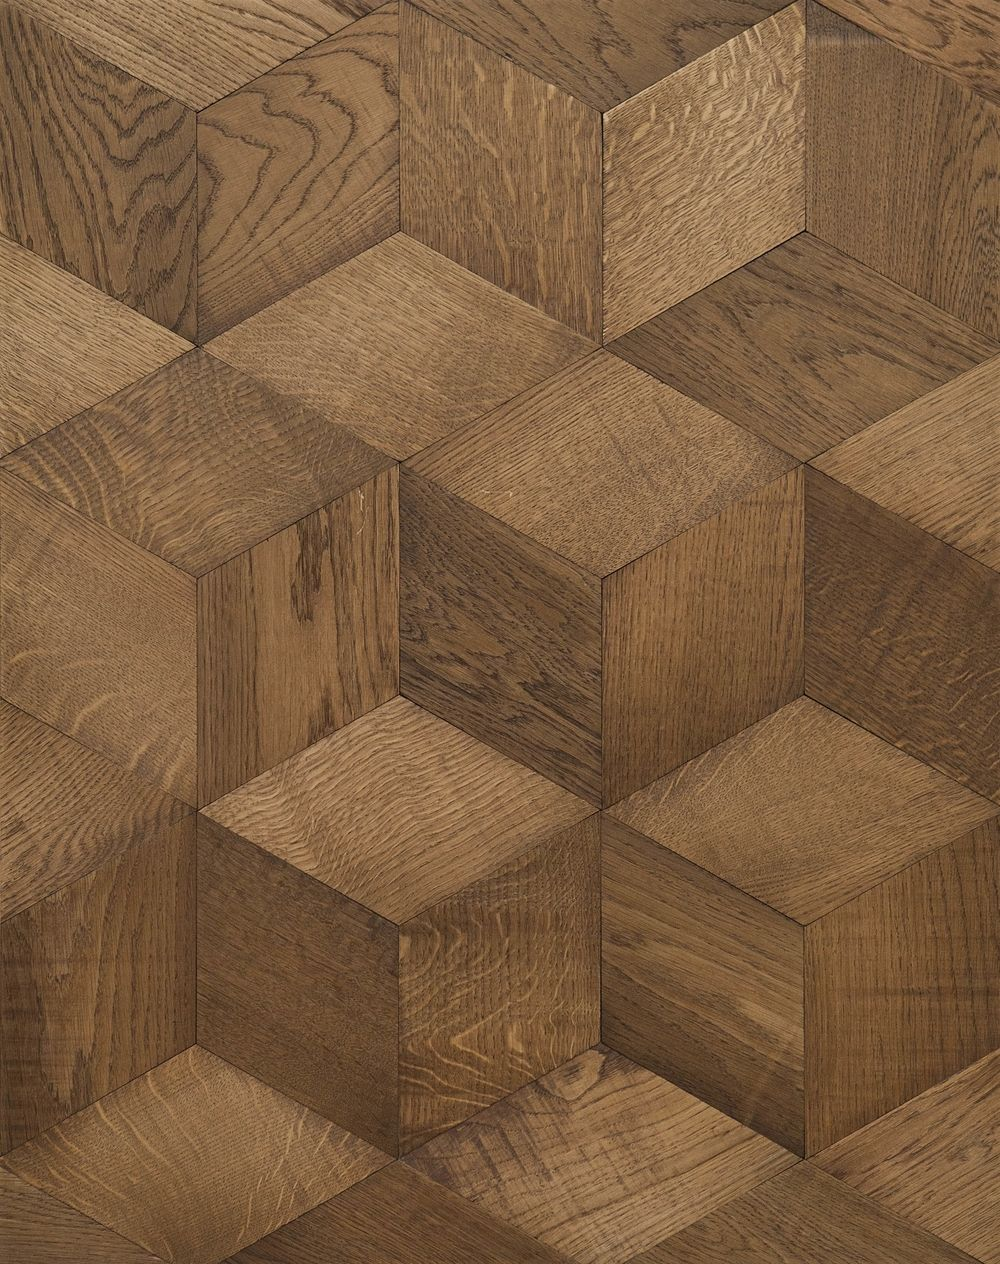 Patterns walking on wood floordesign pinterest woods patterns walking on wood wooden flooringtile dailygadgetfo Image collections